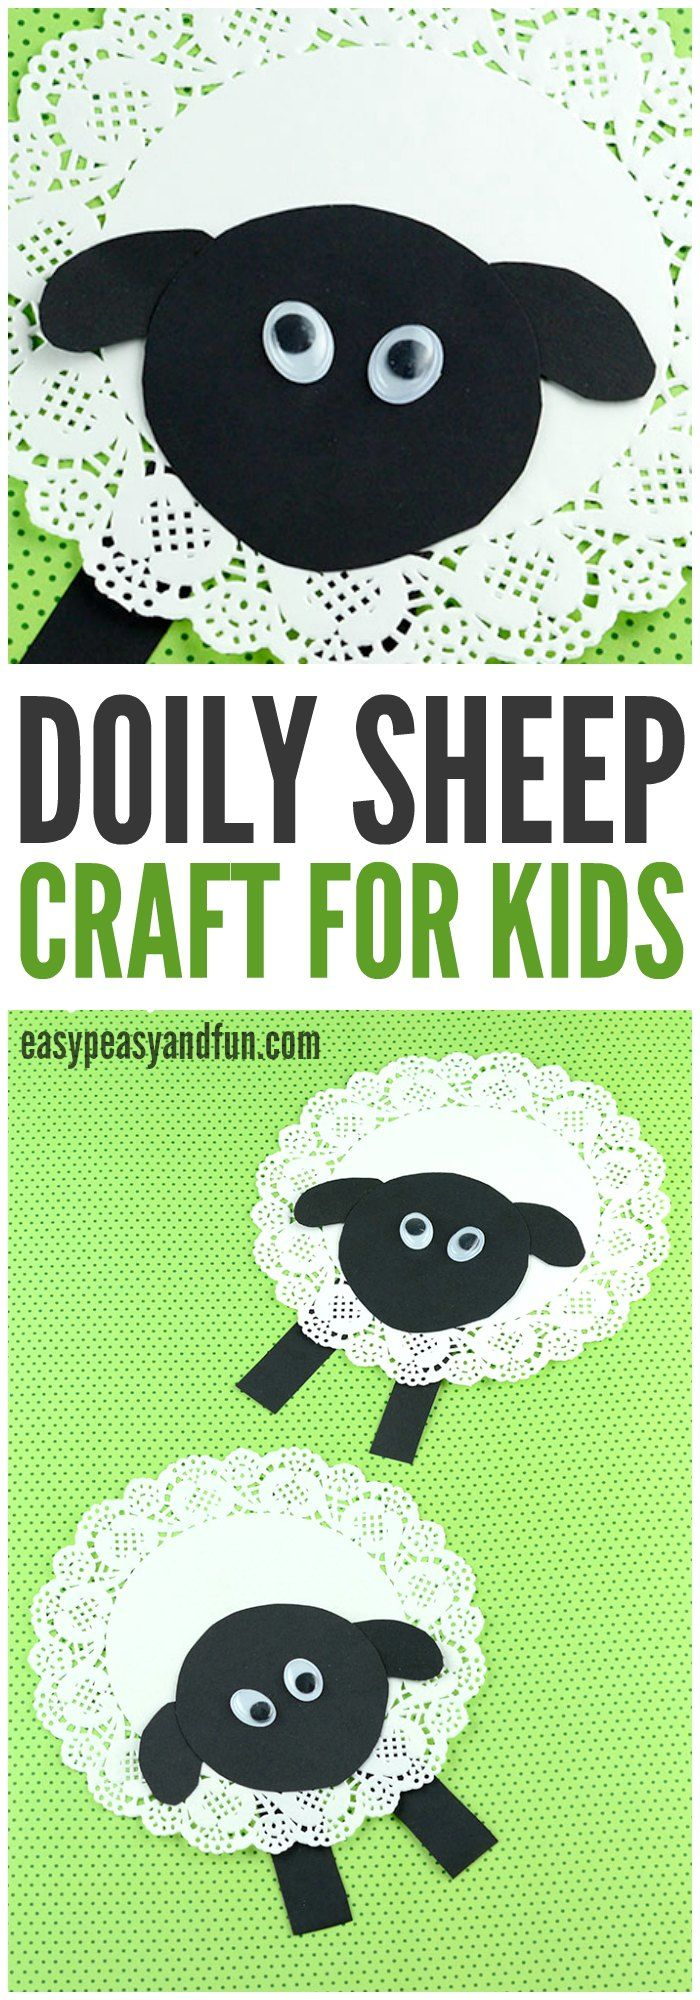 Cute Doily Sheep Craft for Kids